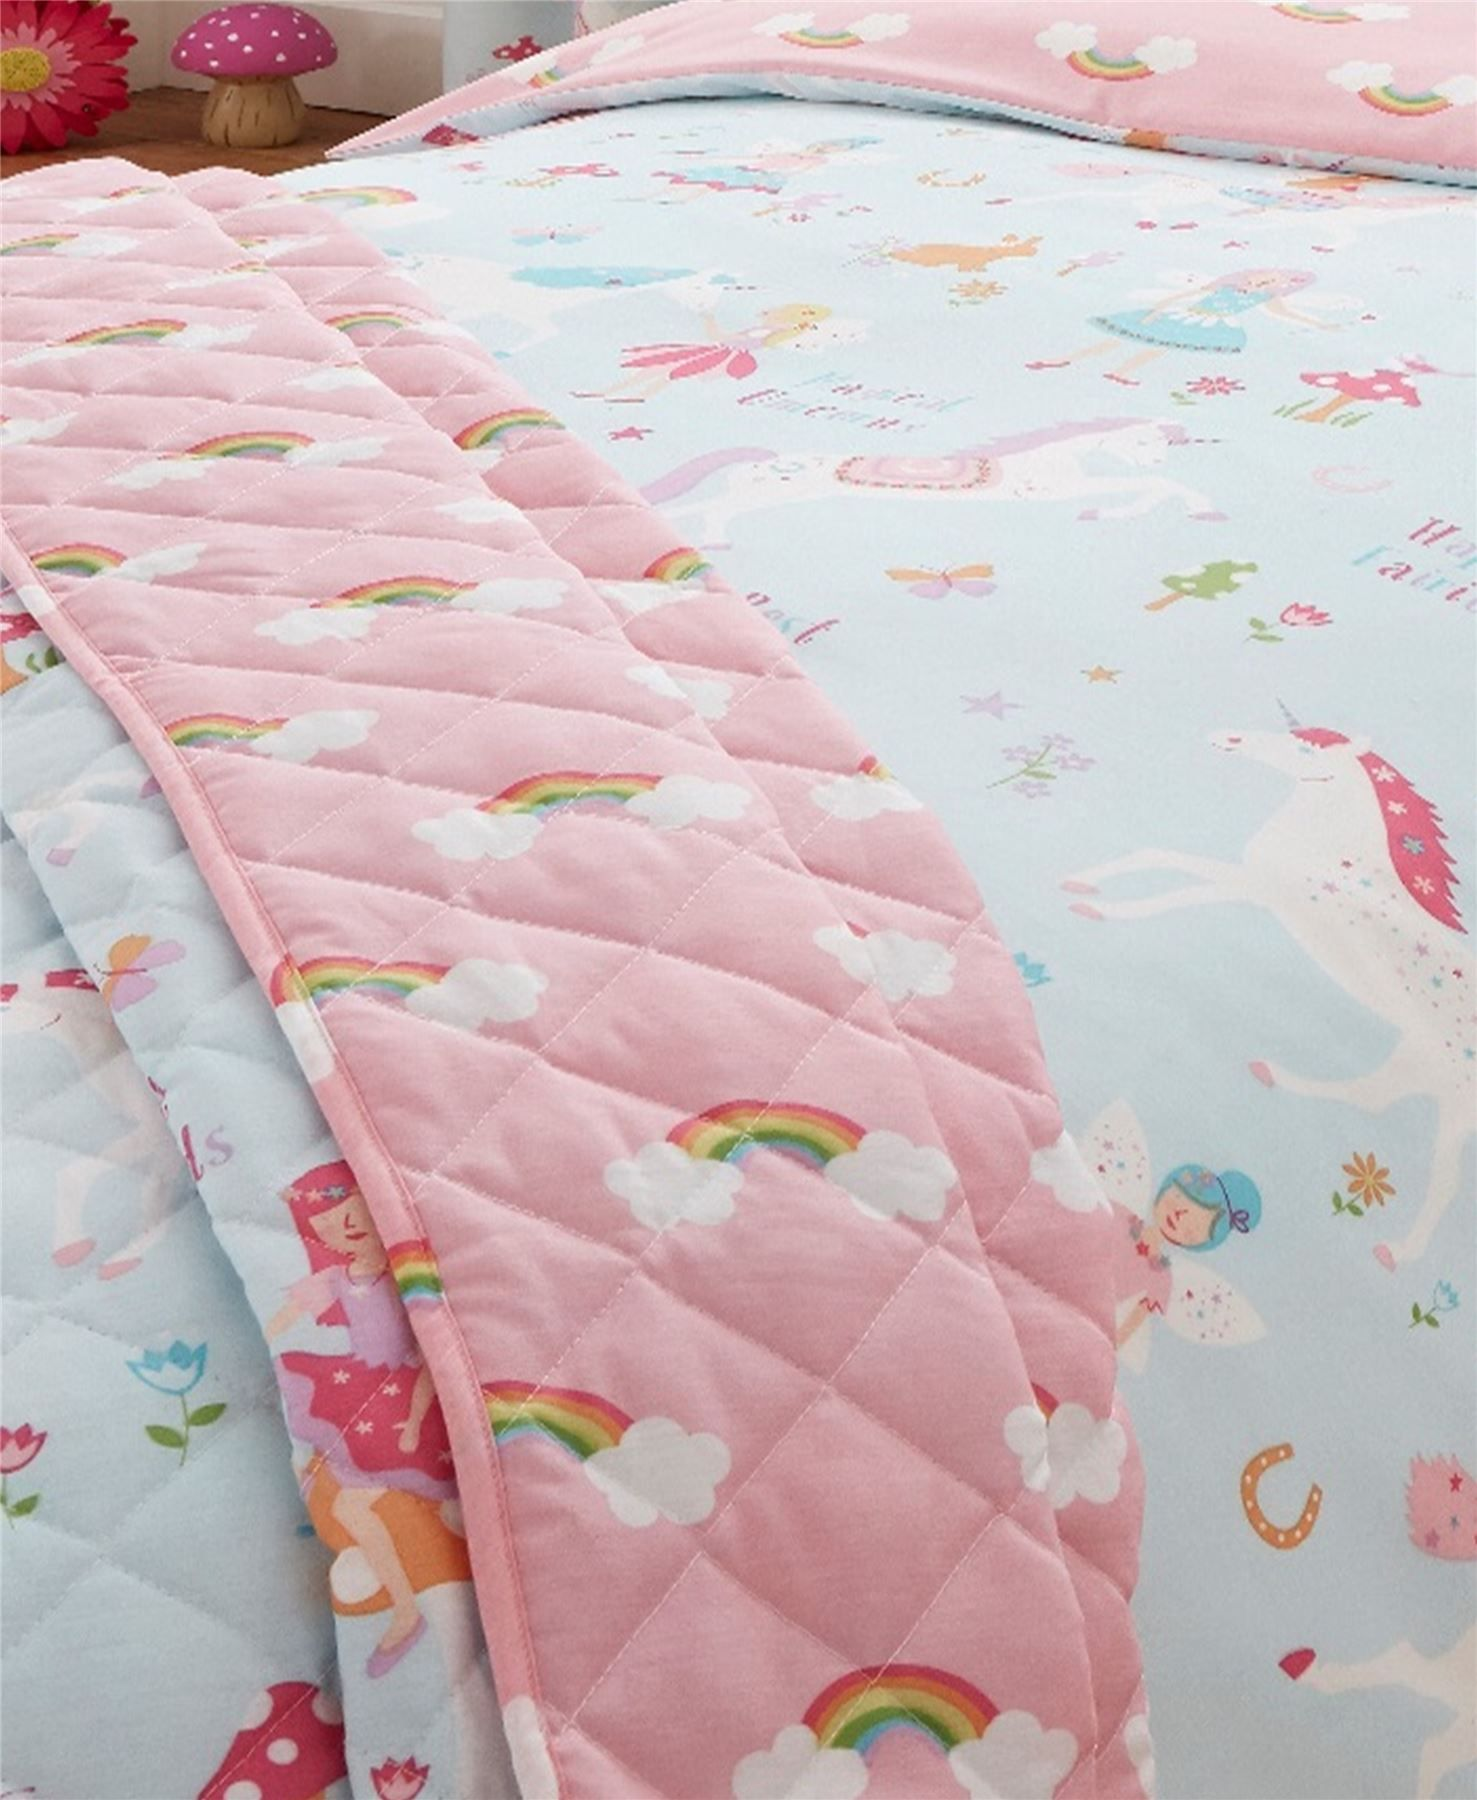 Details about Childrens Quilt Duvet Cover & Pillowcase ...